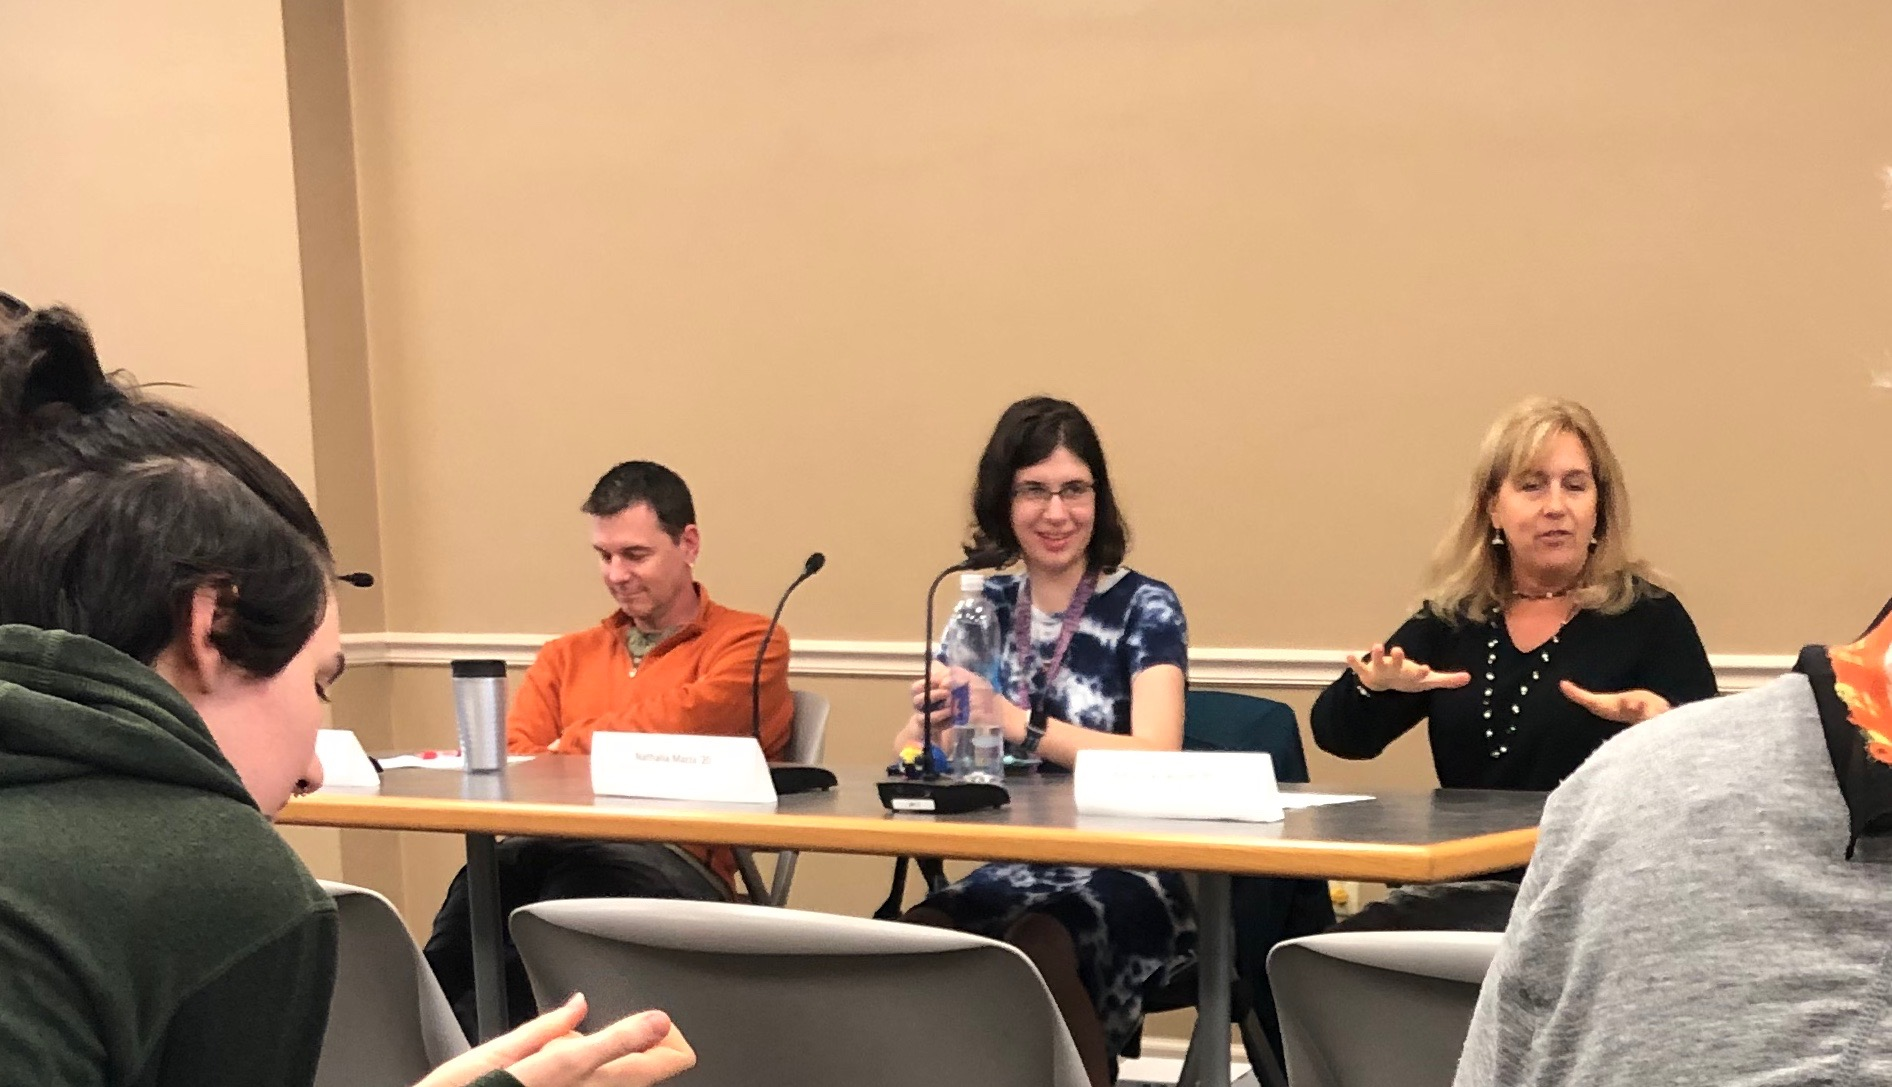 Biology Department Chair Matthew Kittelberger Nathalia Mazza '20, and Psychology Lecturer Katherine Delaney speak at a panel discussion on autism (Photo Jane Fitzpatrick/The Gettysburgian)